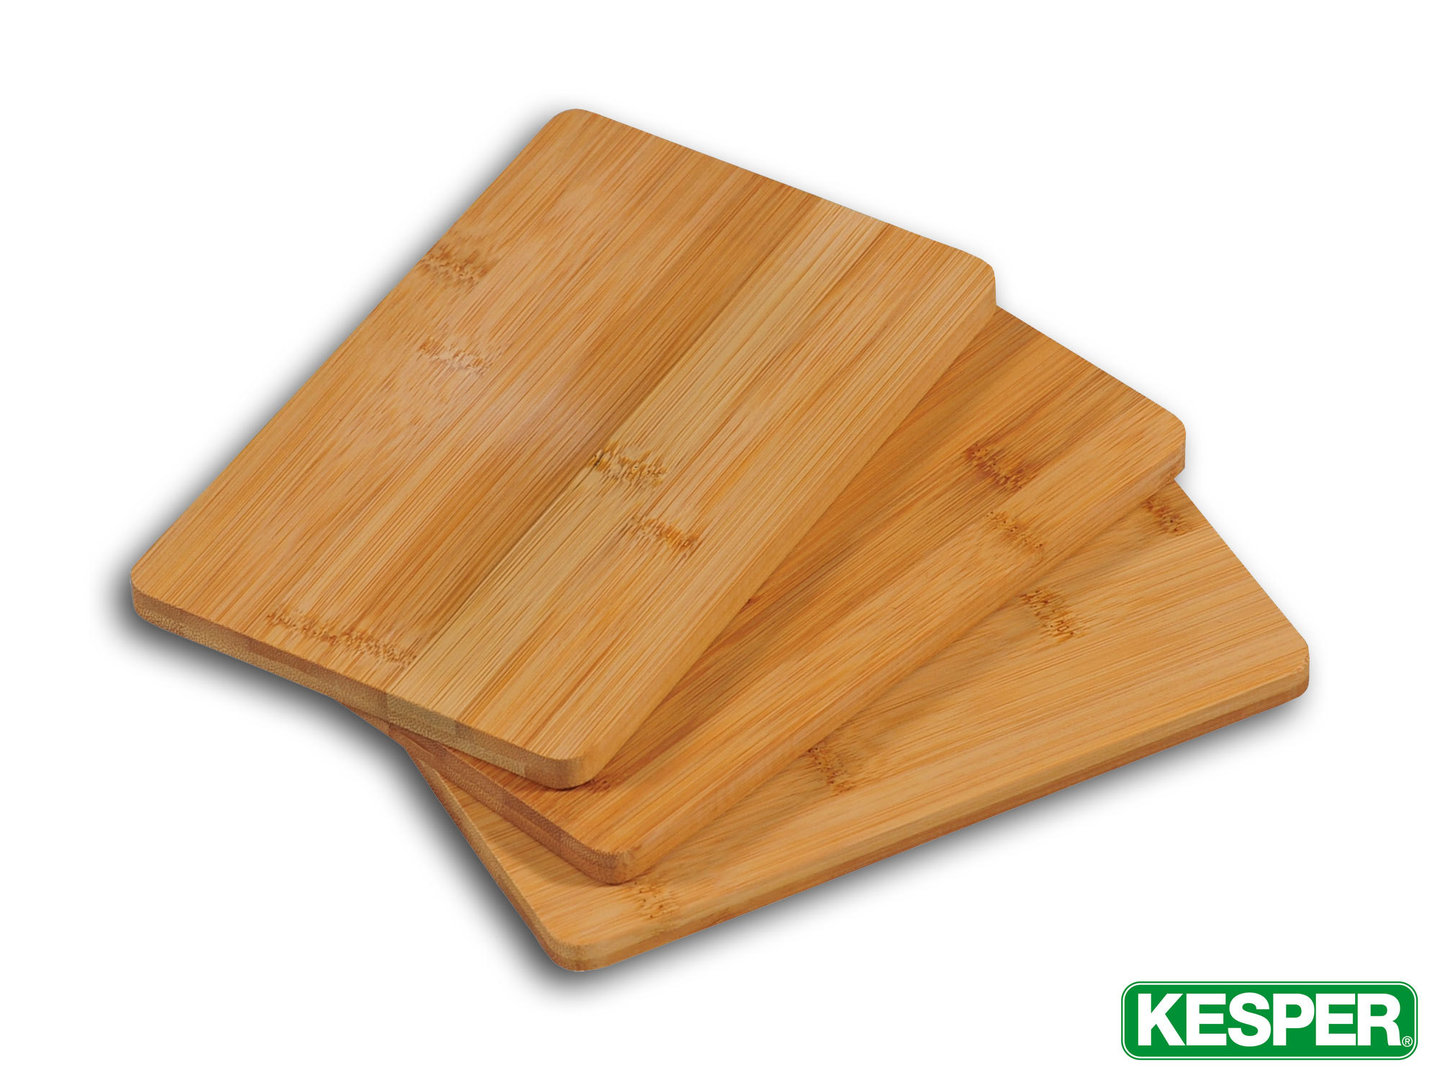 Set Of 3 Small Bamboo Cutting Boards Buy Online At